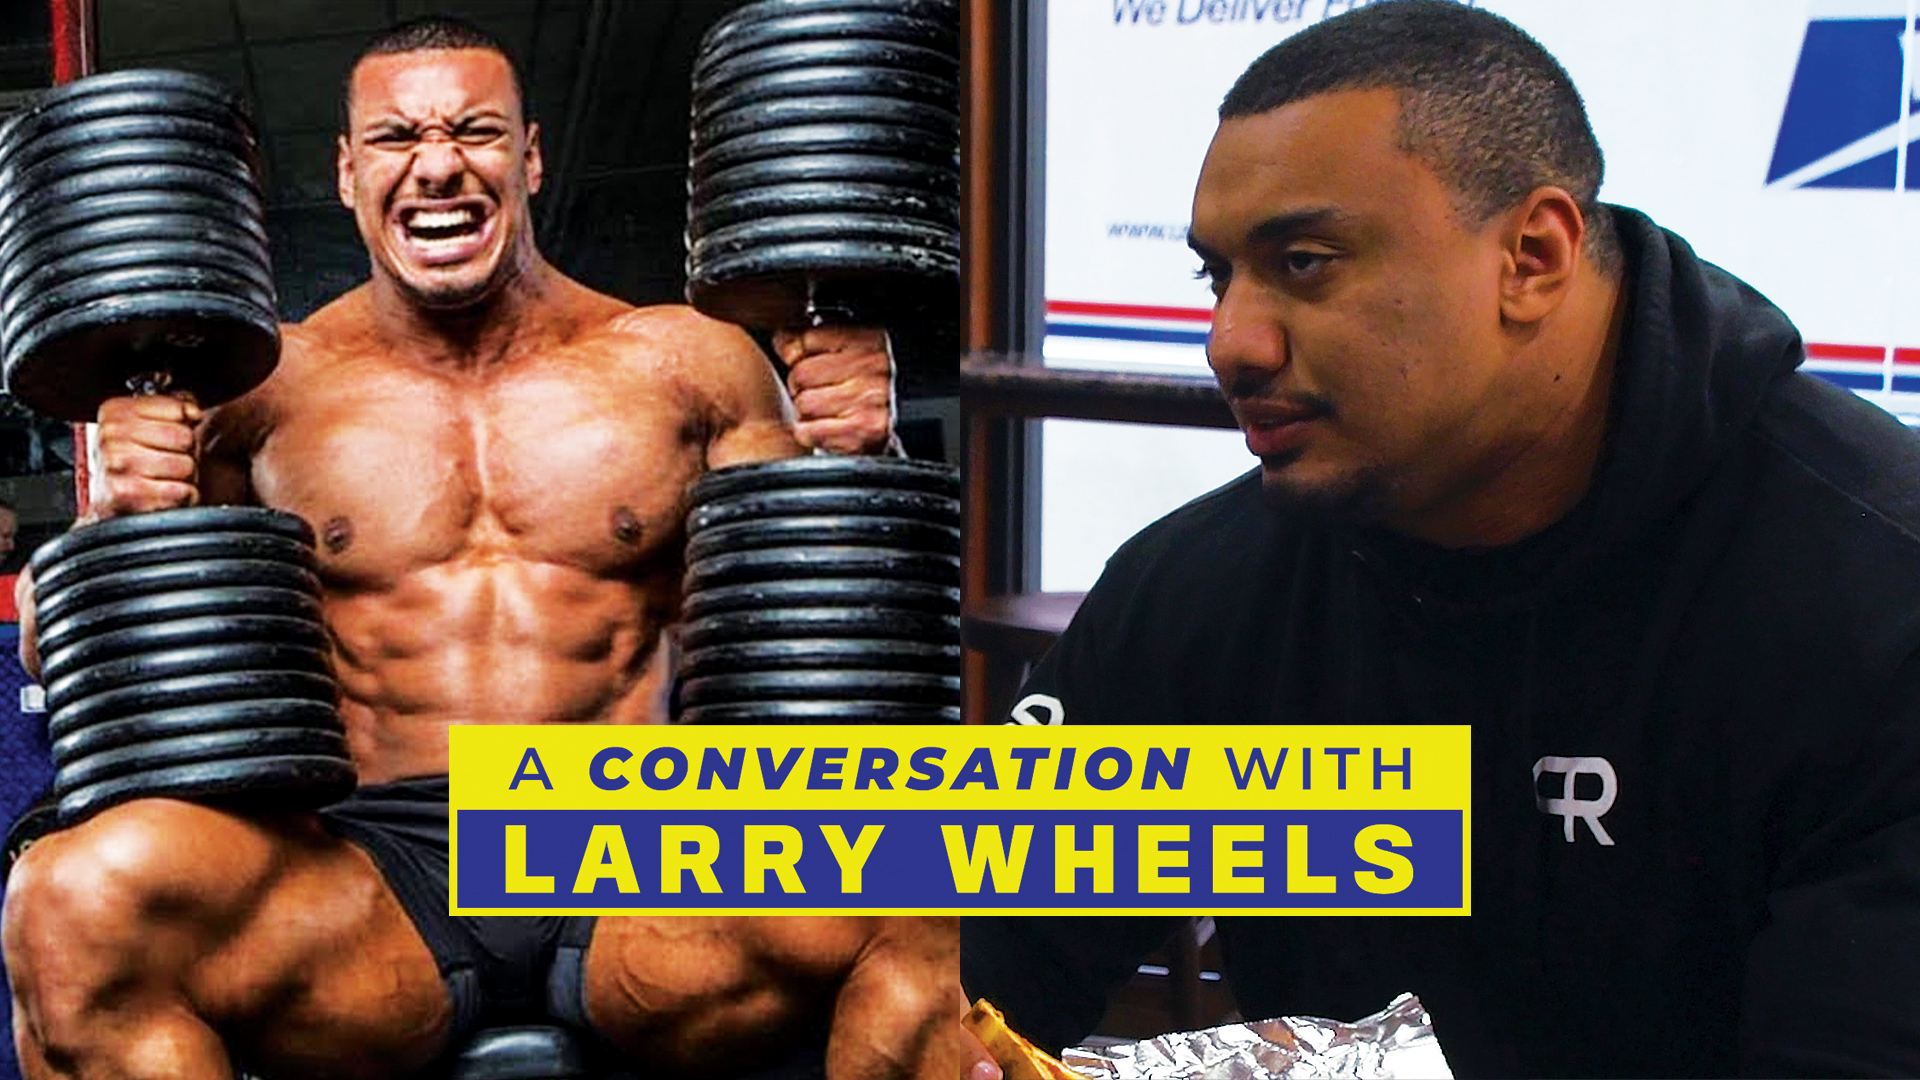 A Conversation With Larry Wheels Part 1 Larry Describes His 1920x1080